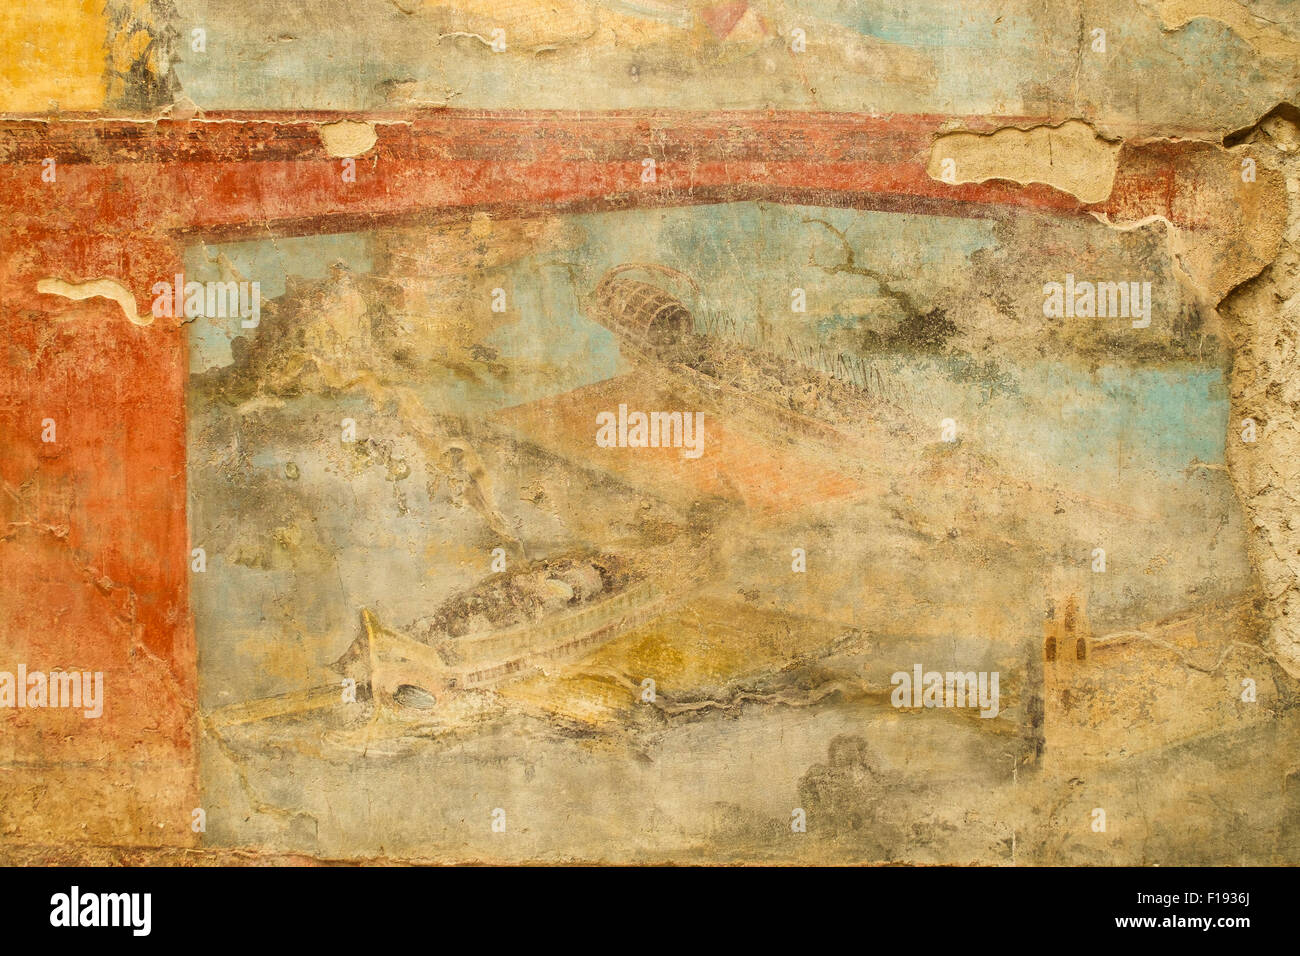 Wall Painting In Pompeii Stock Photos & Wall Painting In Pompeii ...